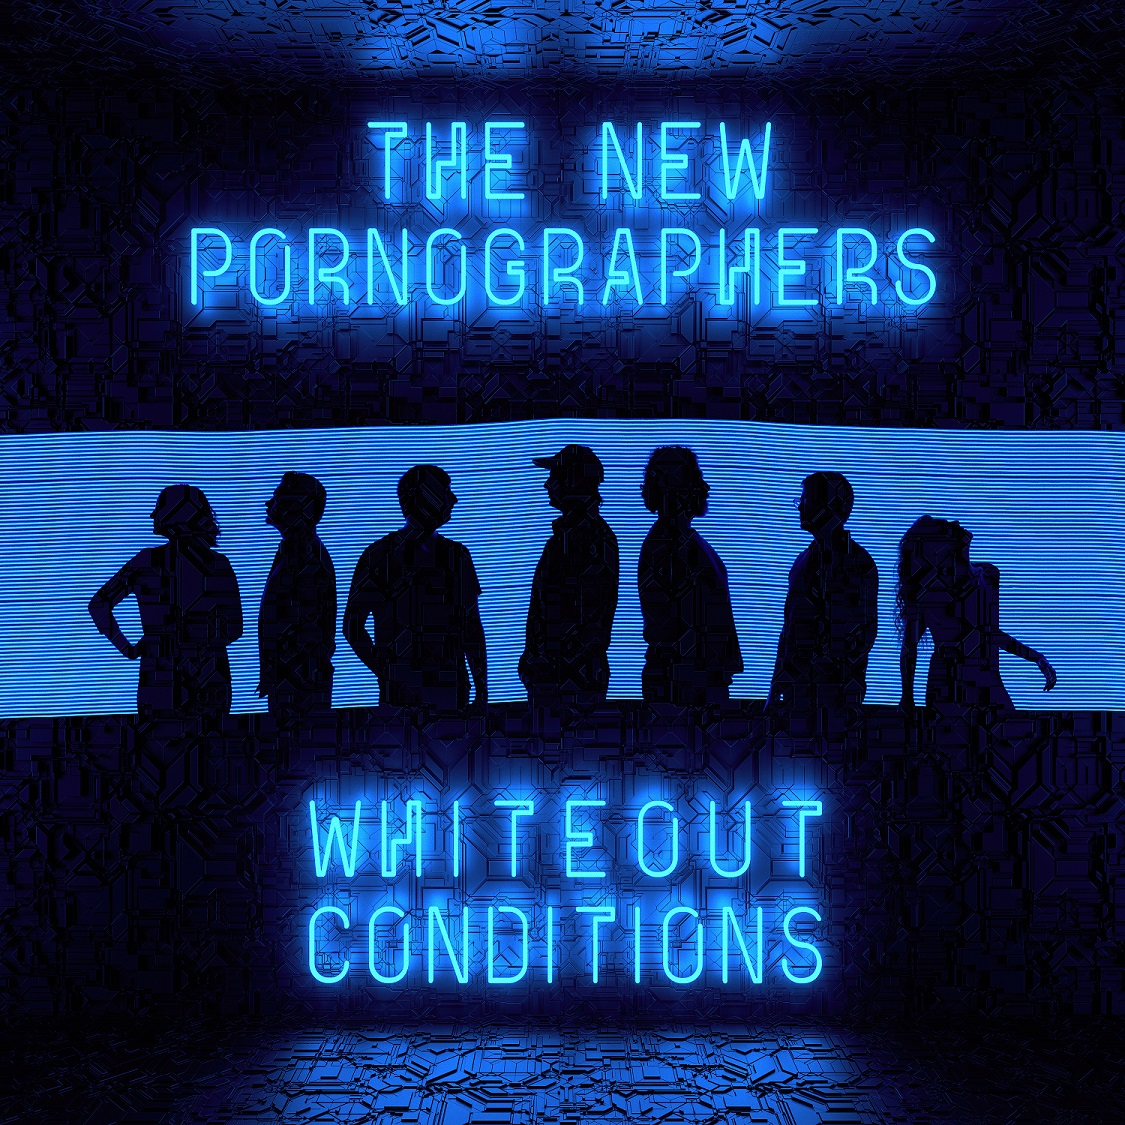 The New Pornographers - Whiteout Conditions album art